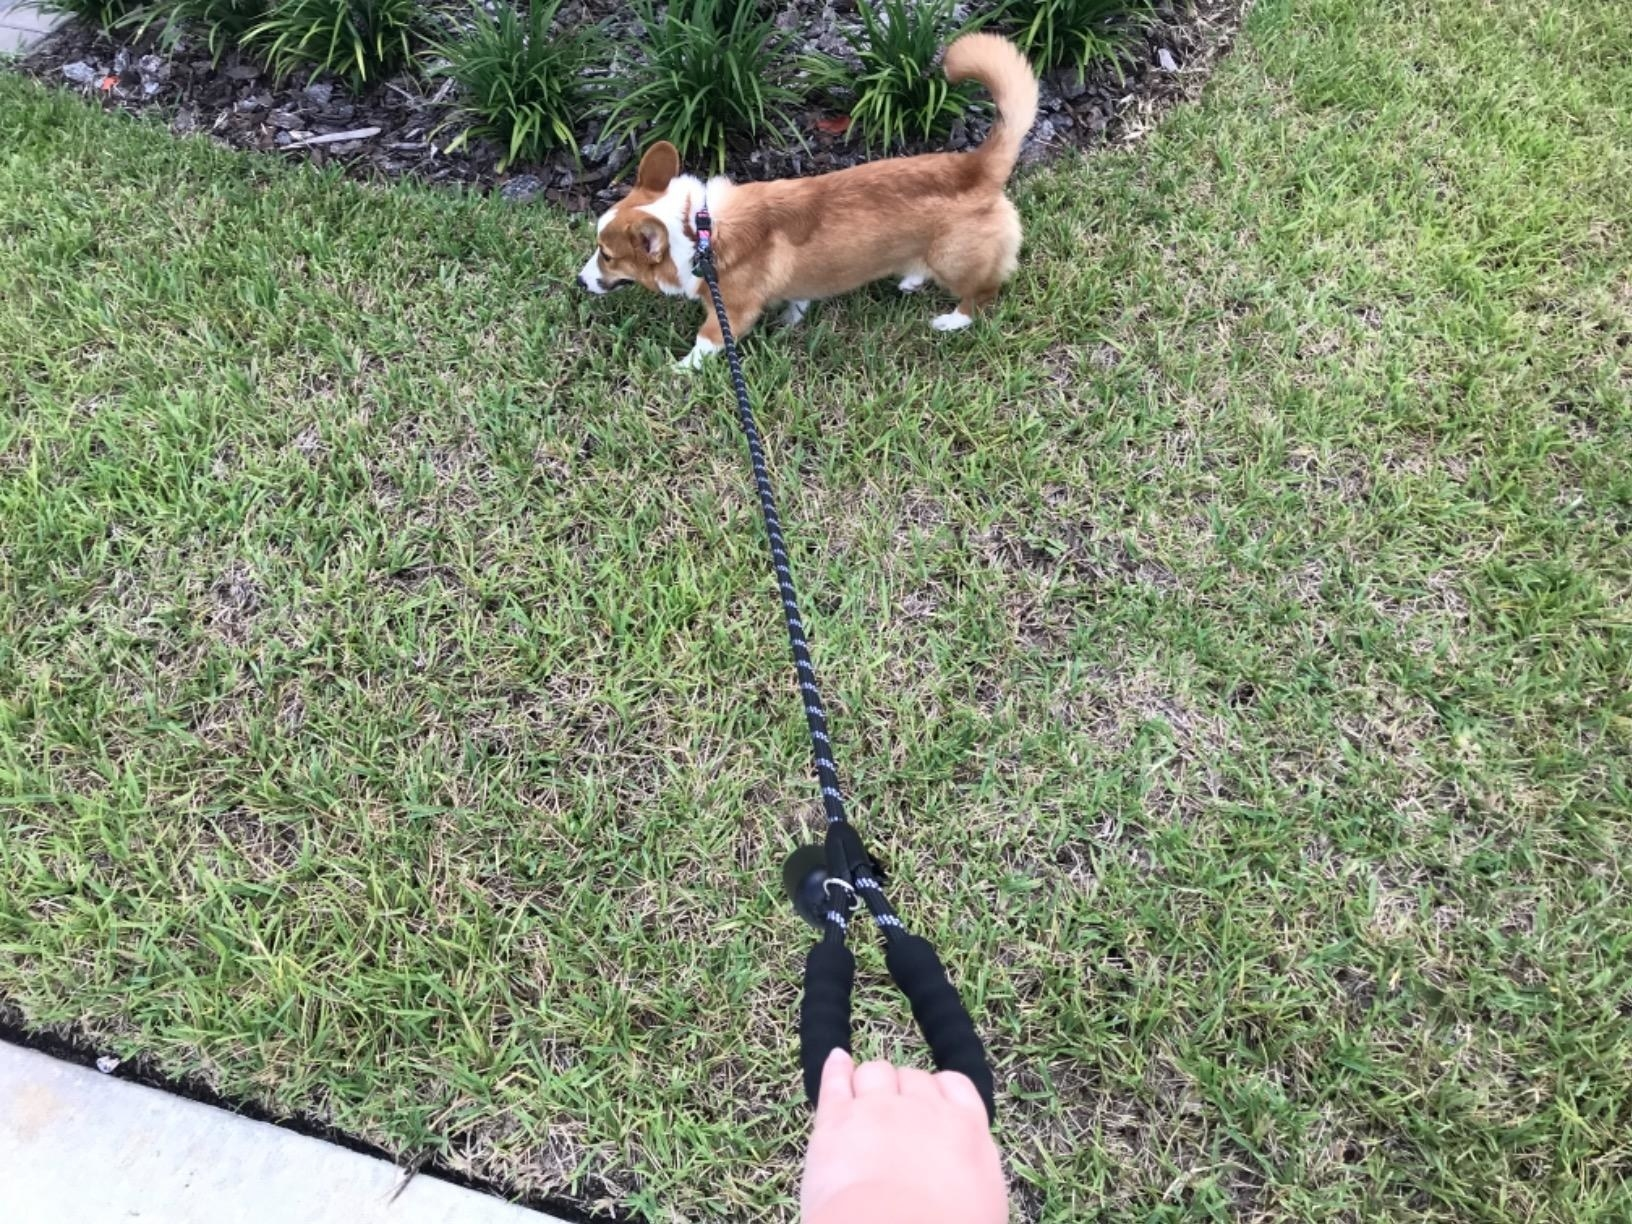 A person uses the leash while their dog pulls on it